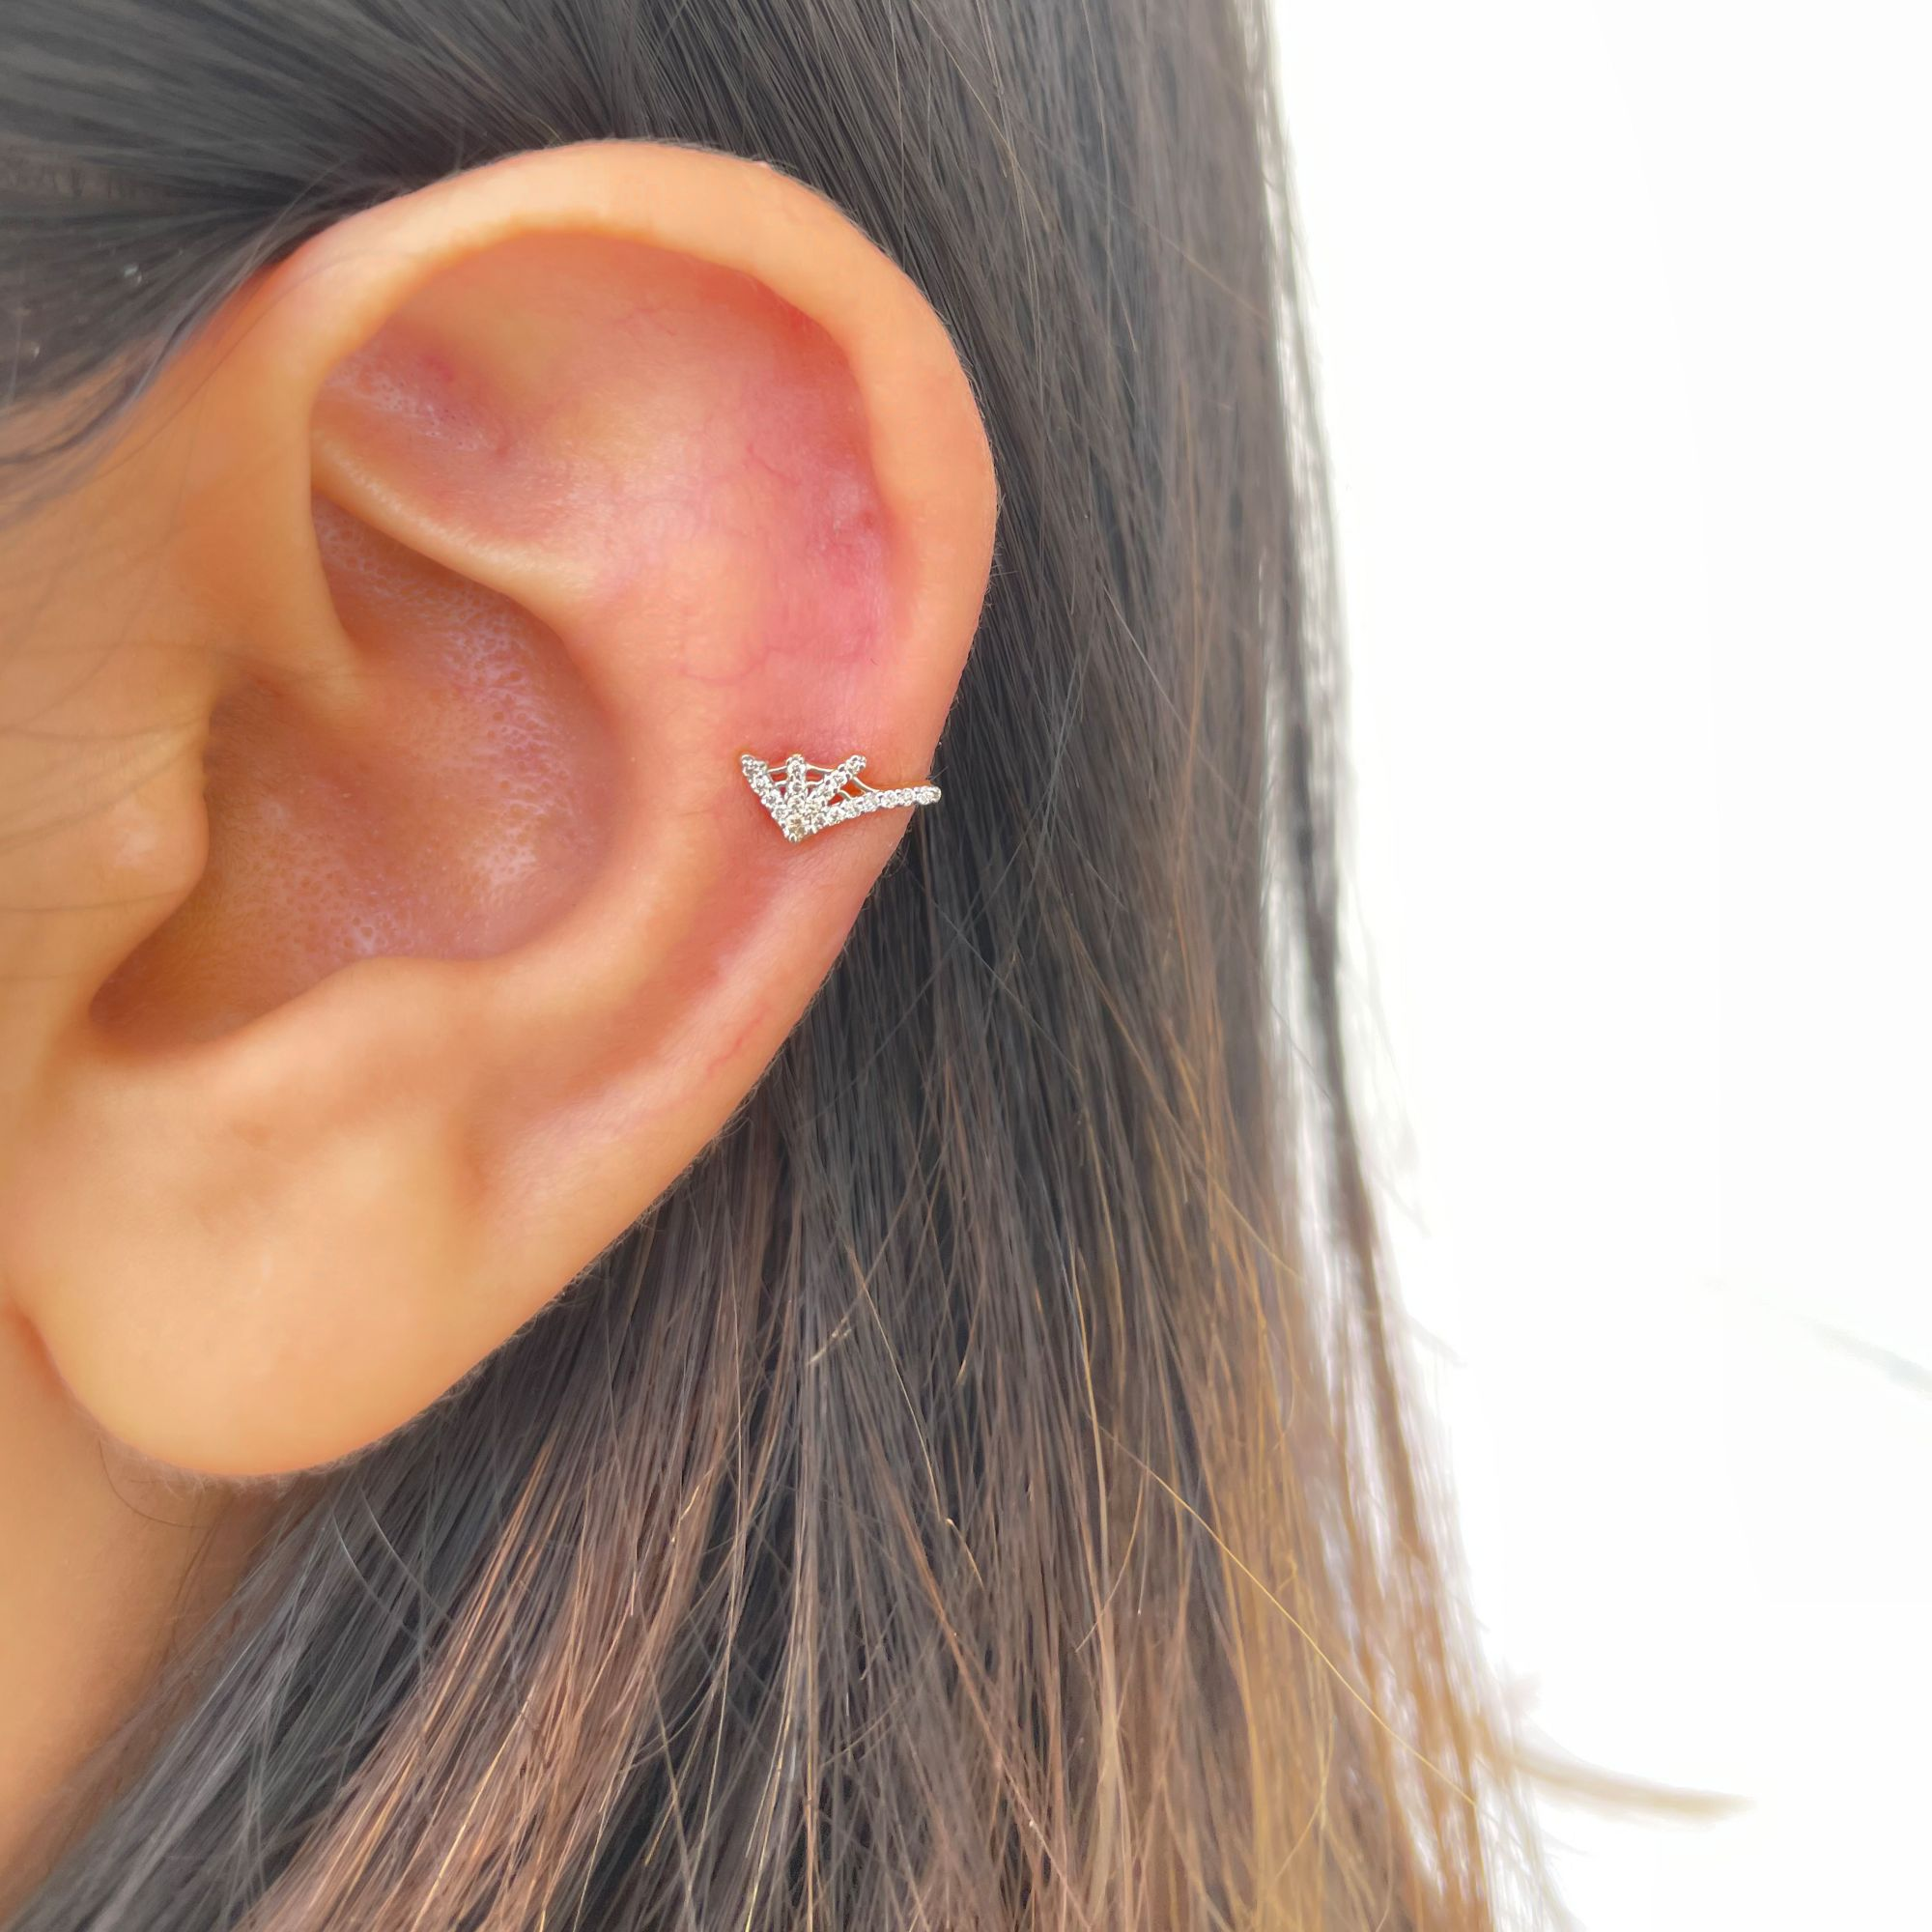 Spider Web Diamond Cartilage Conch Helix Rook Piercing Earring